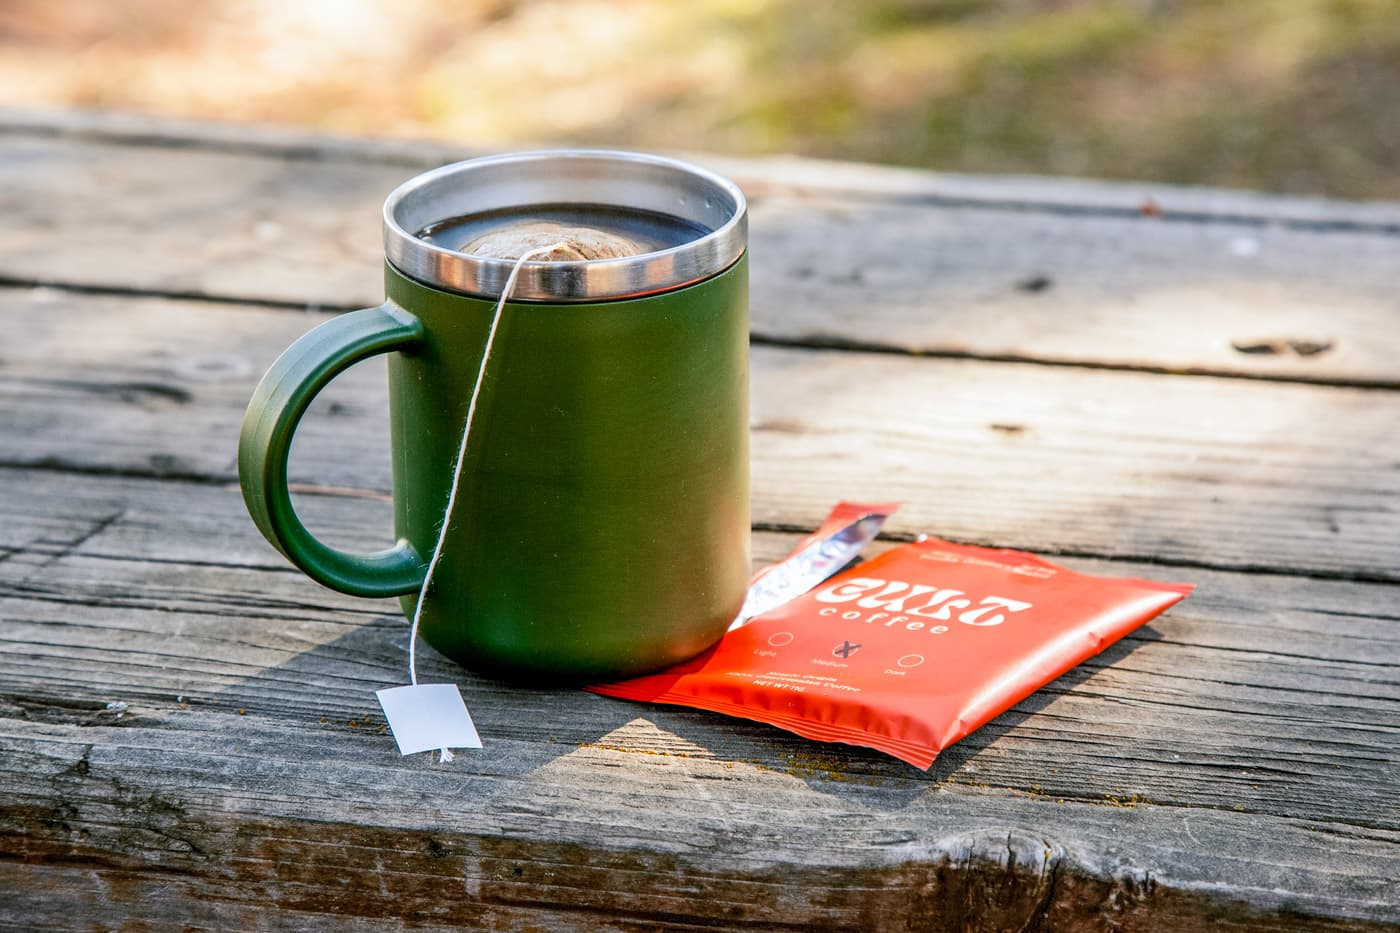 The Ultimate Guide To Camp Coffee Our Favorite Ways To Brew Coffee While Camping Fresh Off The Grid